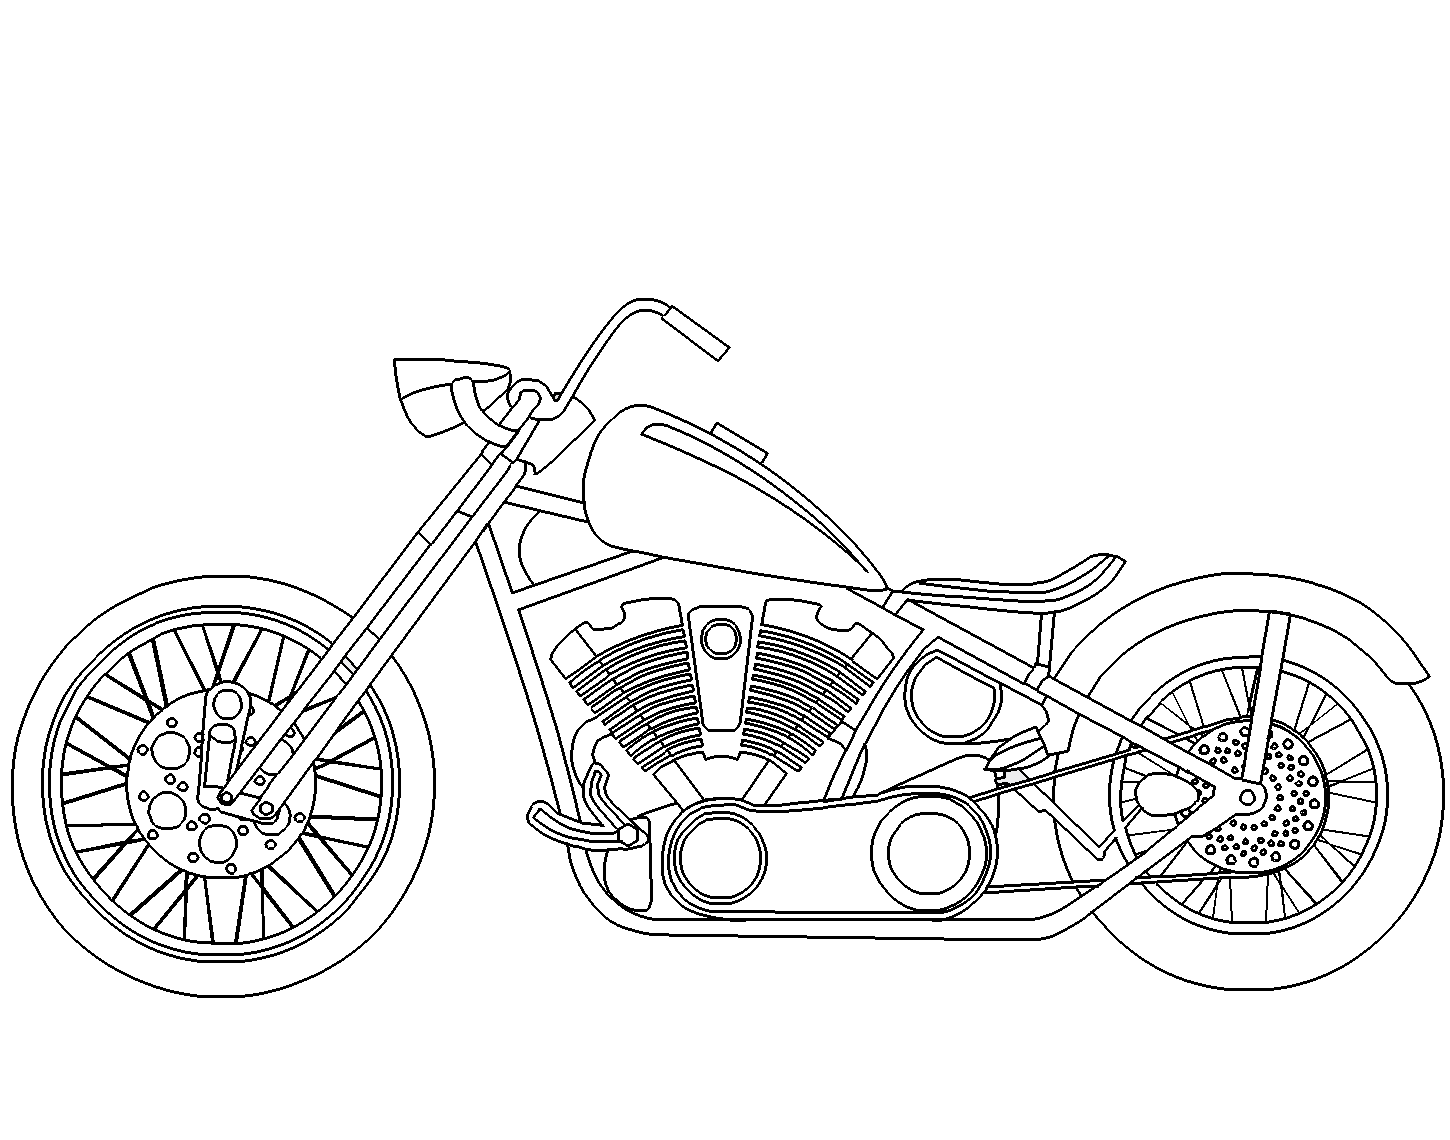 Santa On A Motorcycle Coloring Page With Chopper Free Online